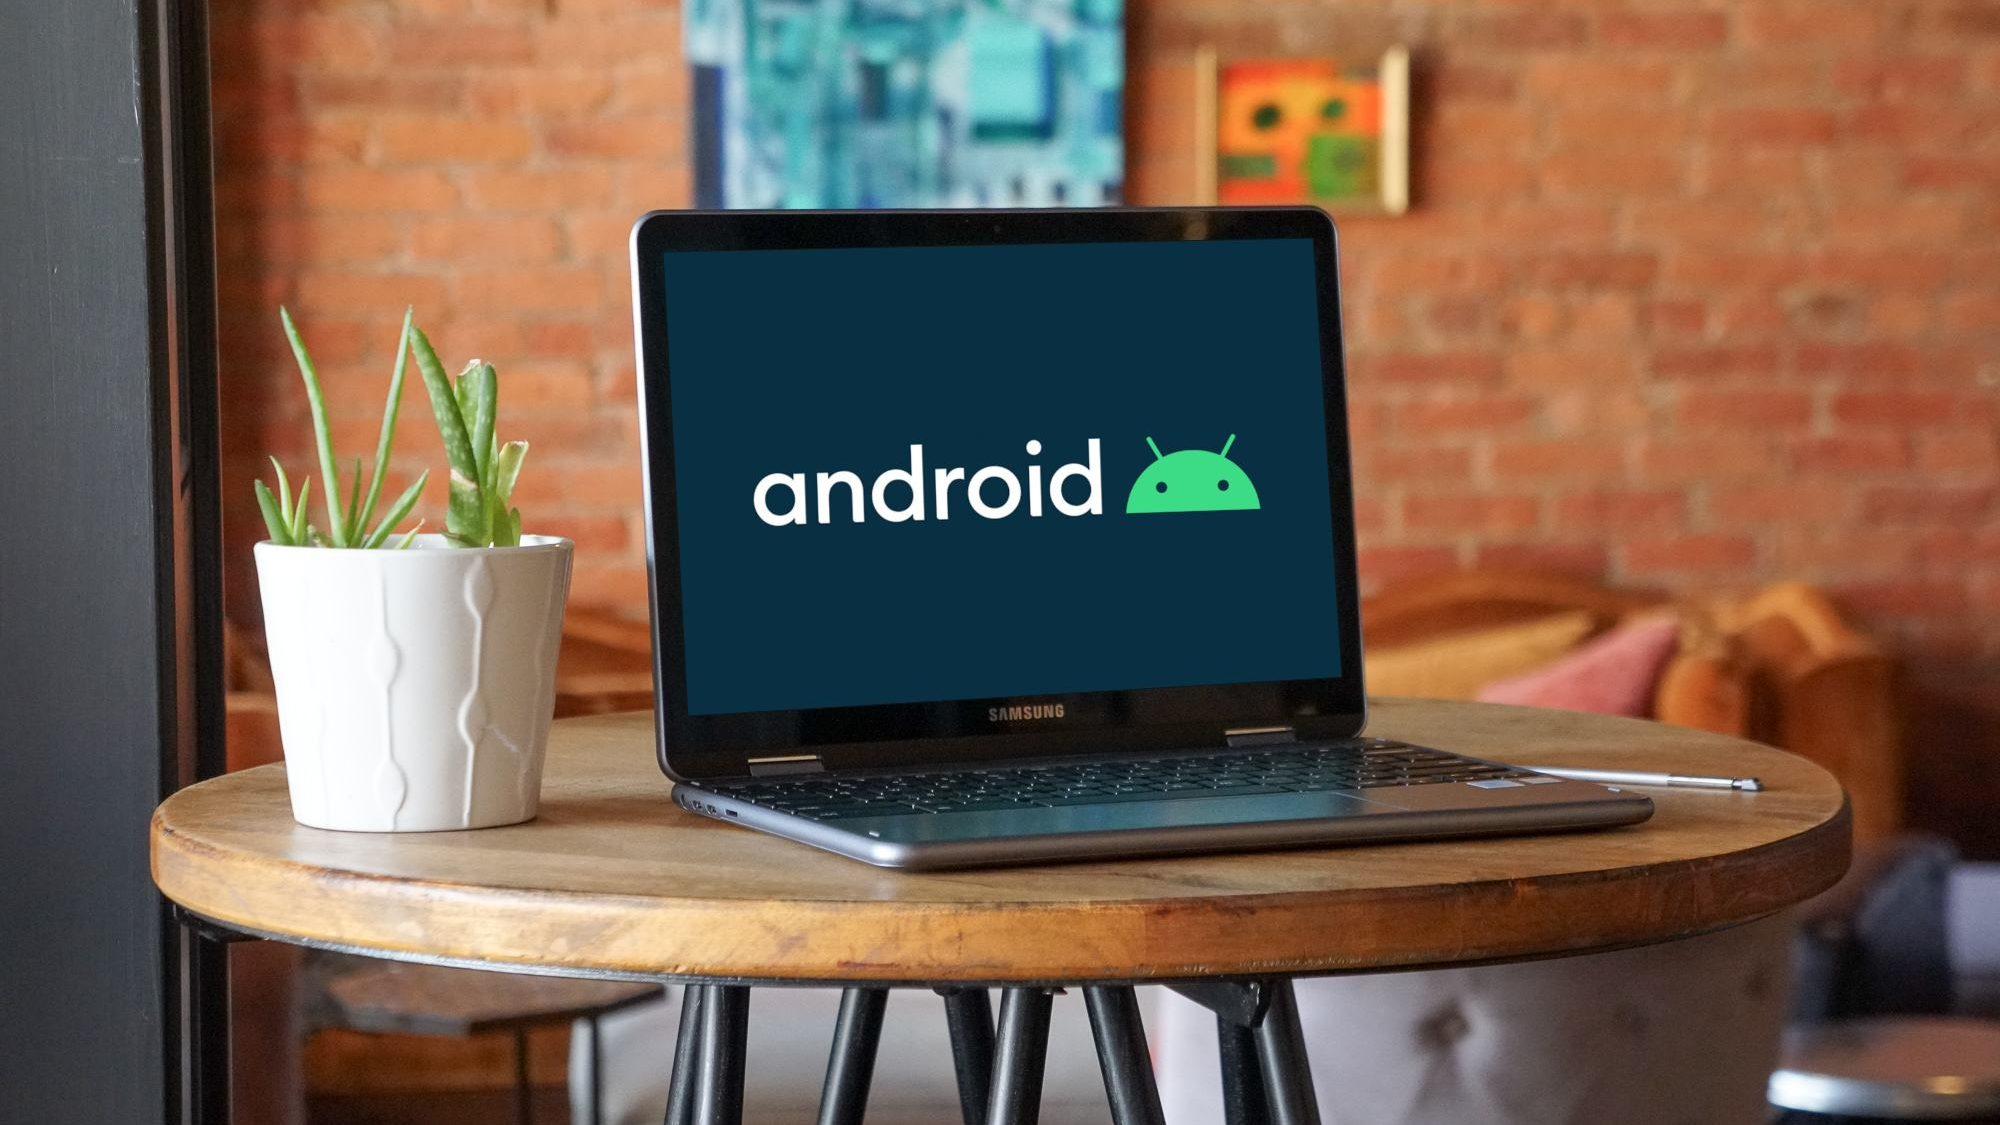 Google is working on improved scaling for Android apps on Chromebooks, but it needs work